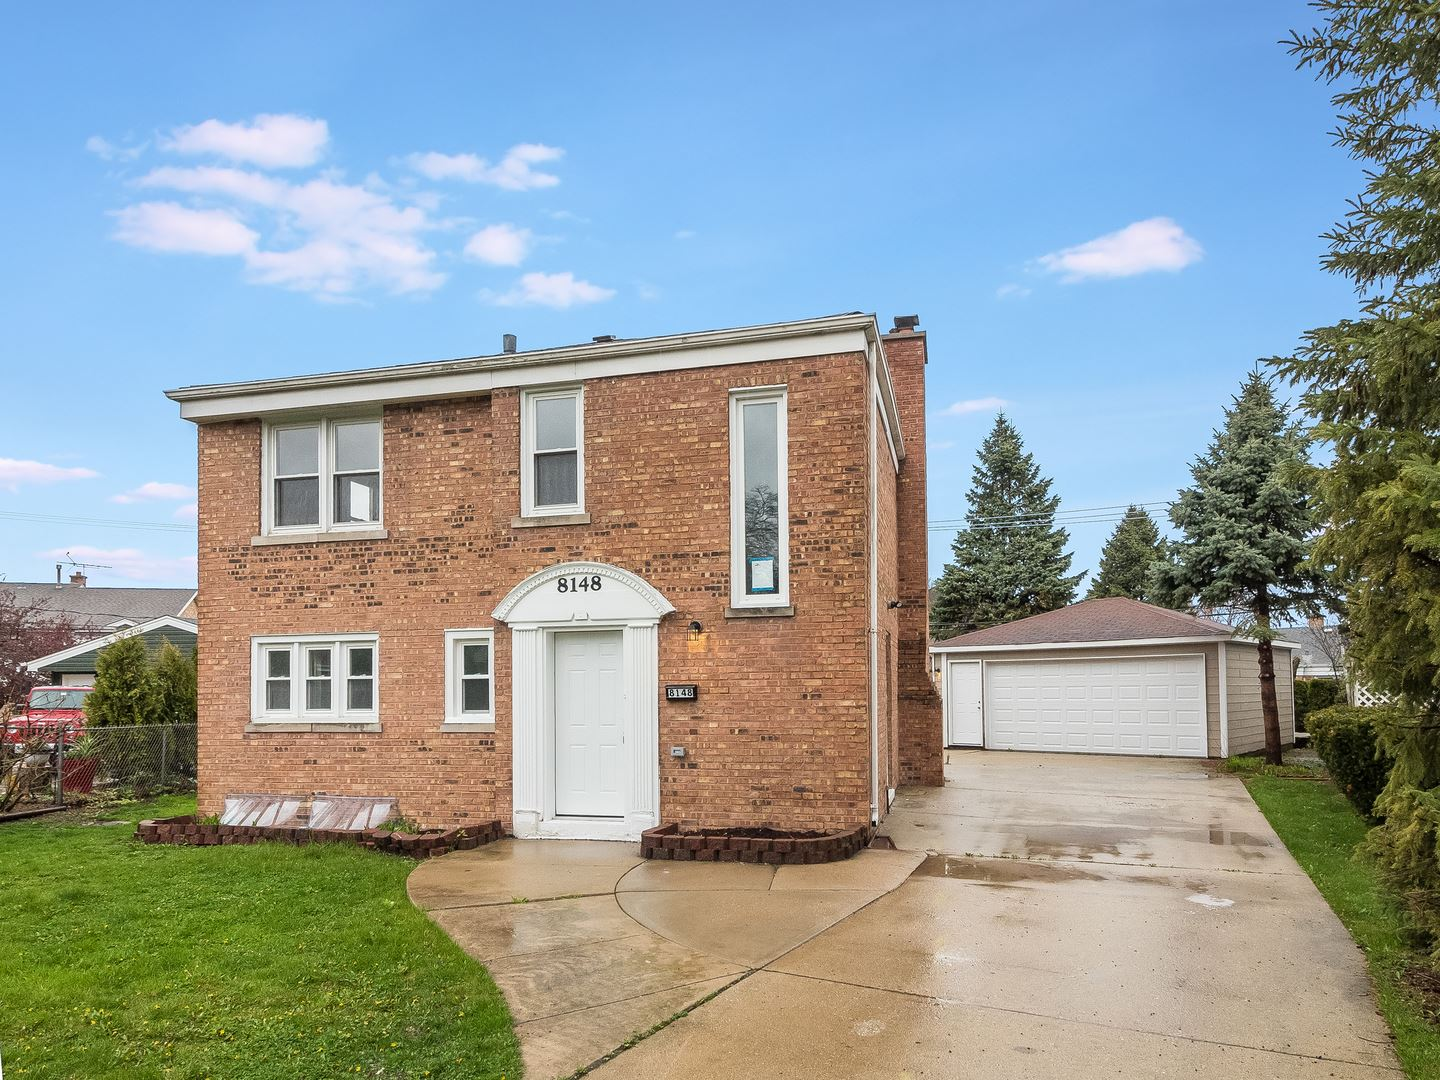 8148 W OAK Lane, Niles, IL 60714 - #: 10714564